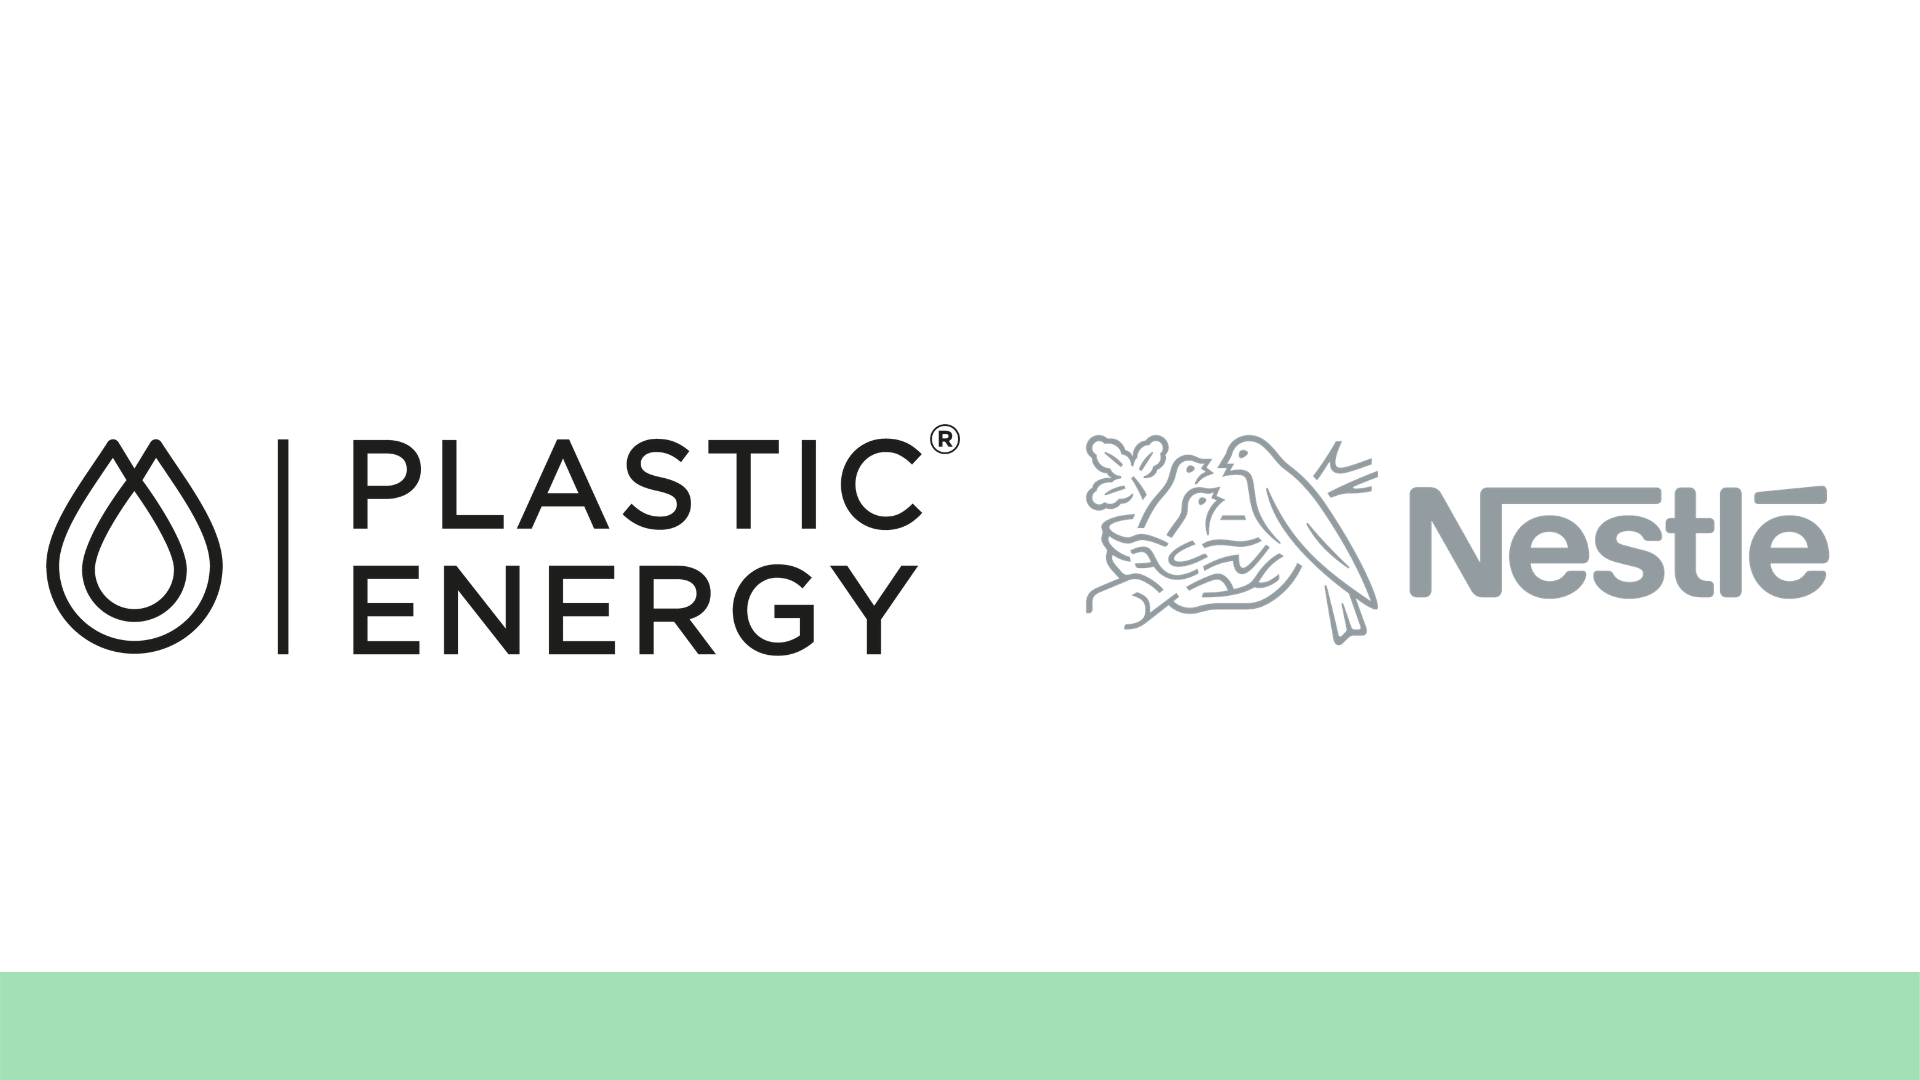 Nestlé partners with Plastic Energy in first steps for recycling facility in the UK